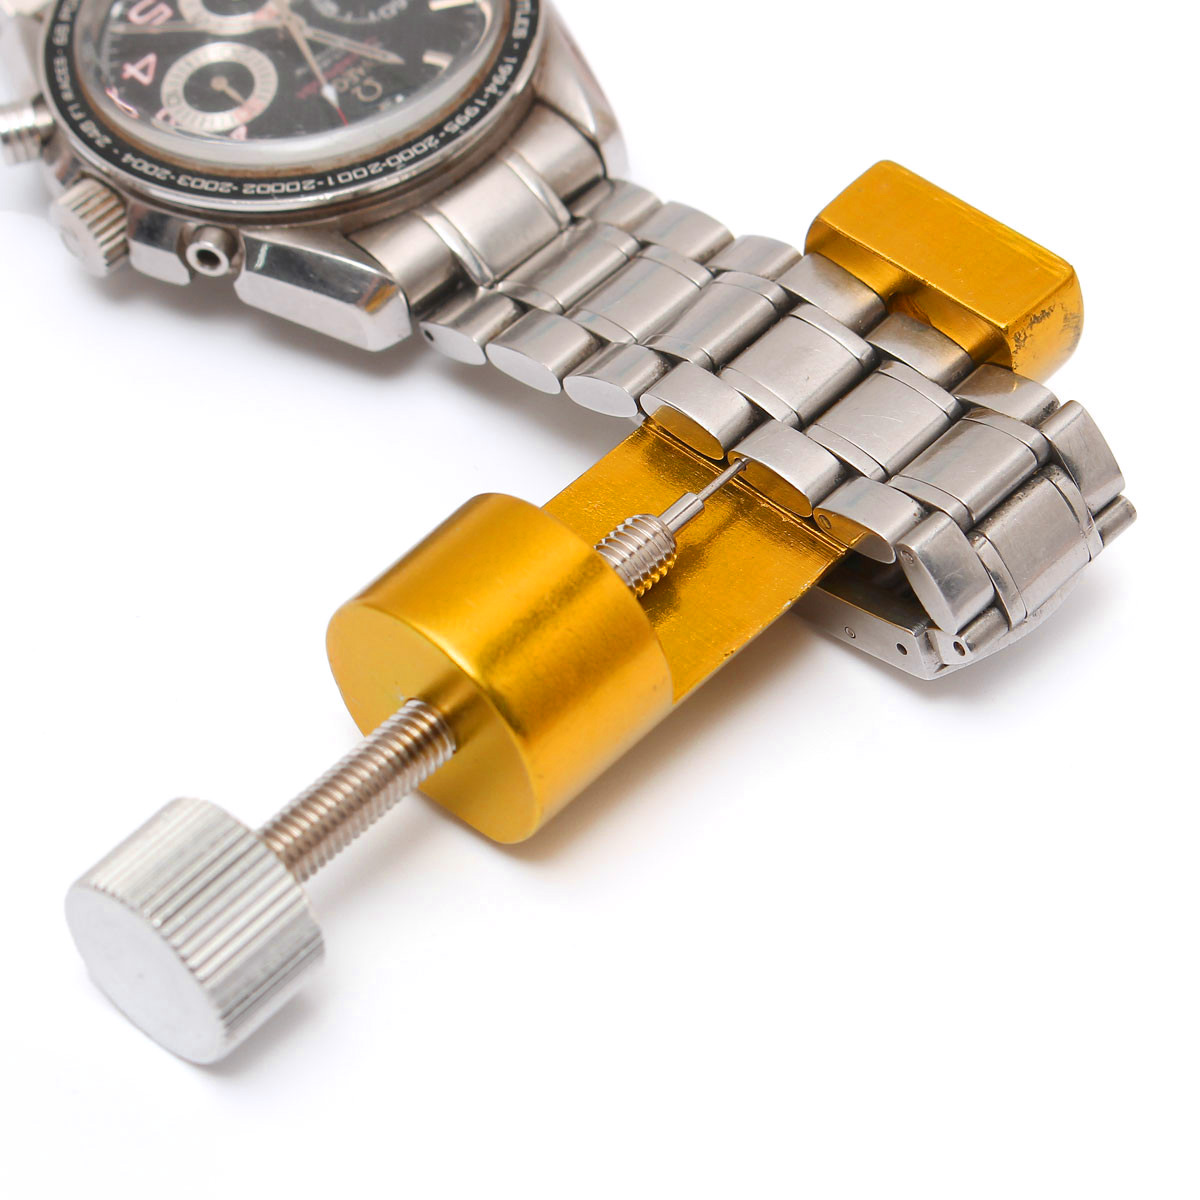 watch-tools-professional-watch-repair-tool-kit-spare-parts-for-watches-band-remover-watchmaker-tools-parts-horloge-gereedschap